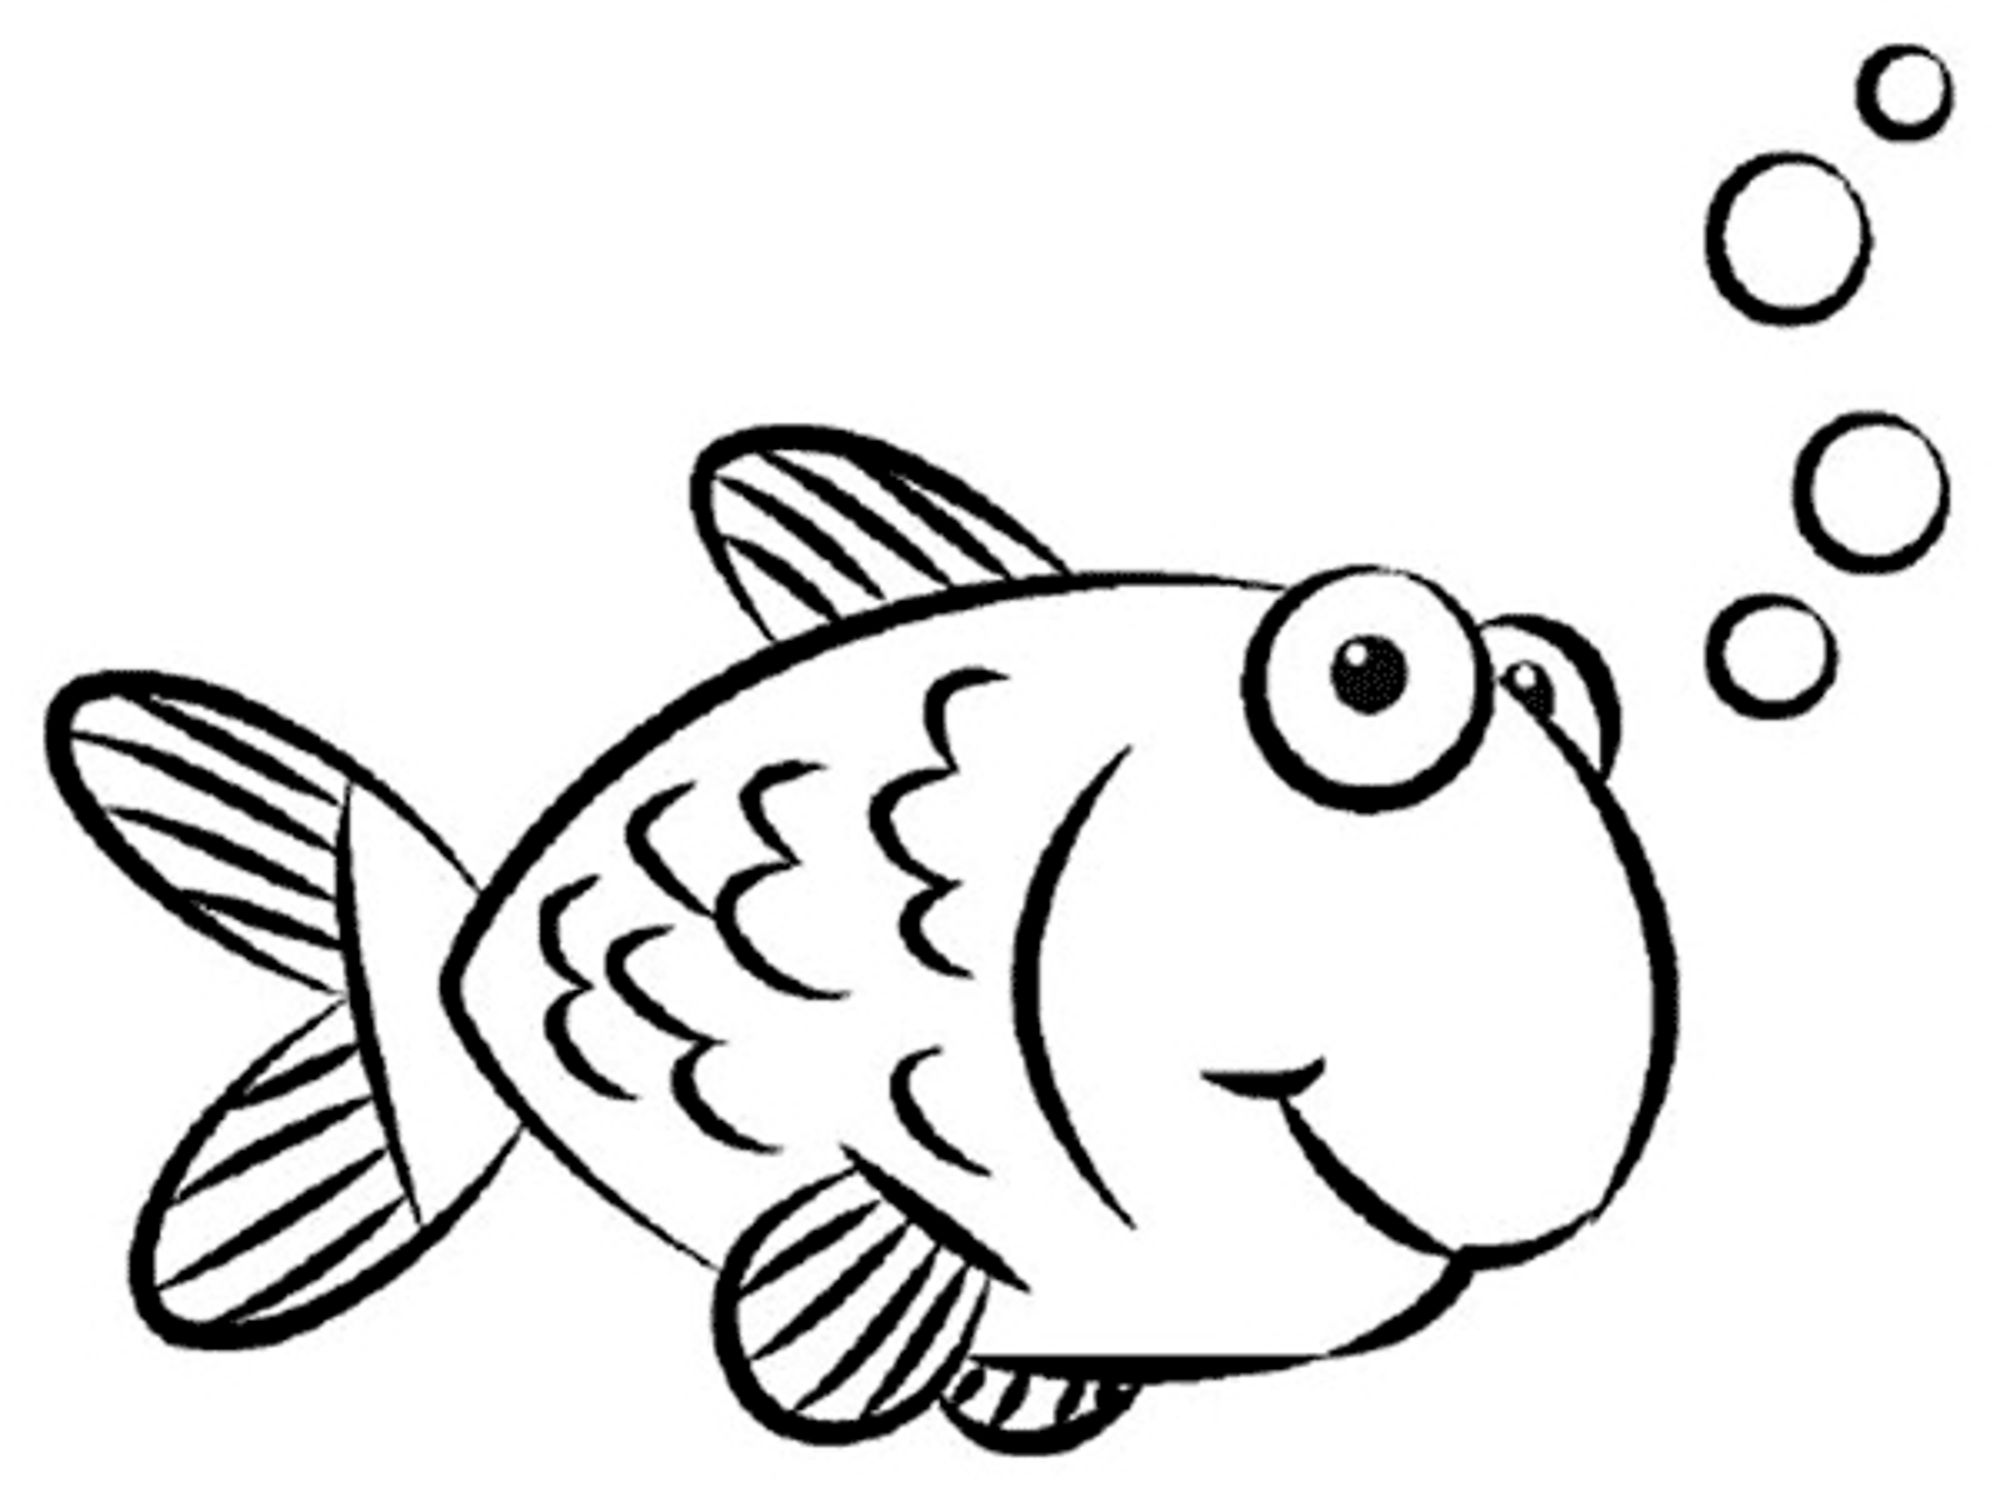 Free Simple Fish Drawing For Kids Download Free Clip Art